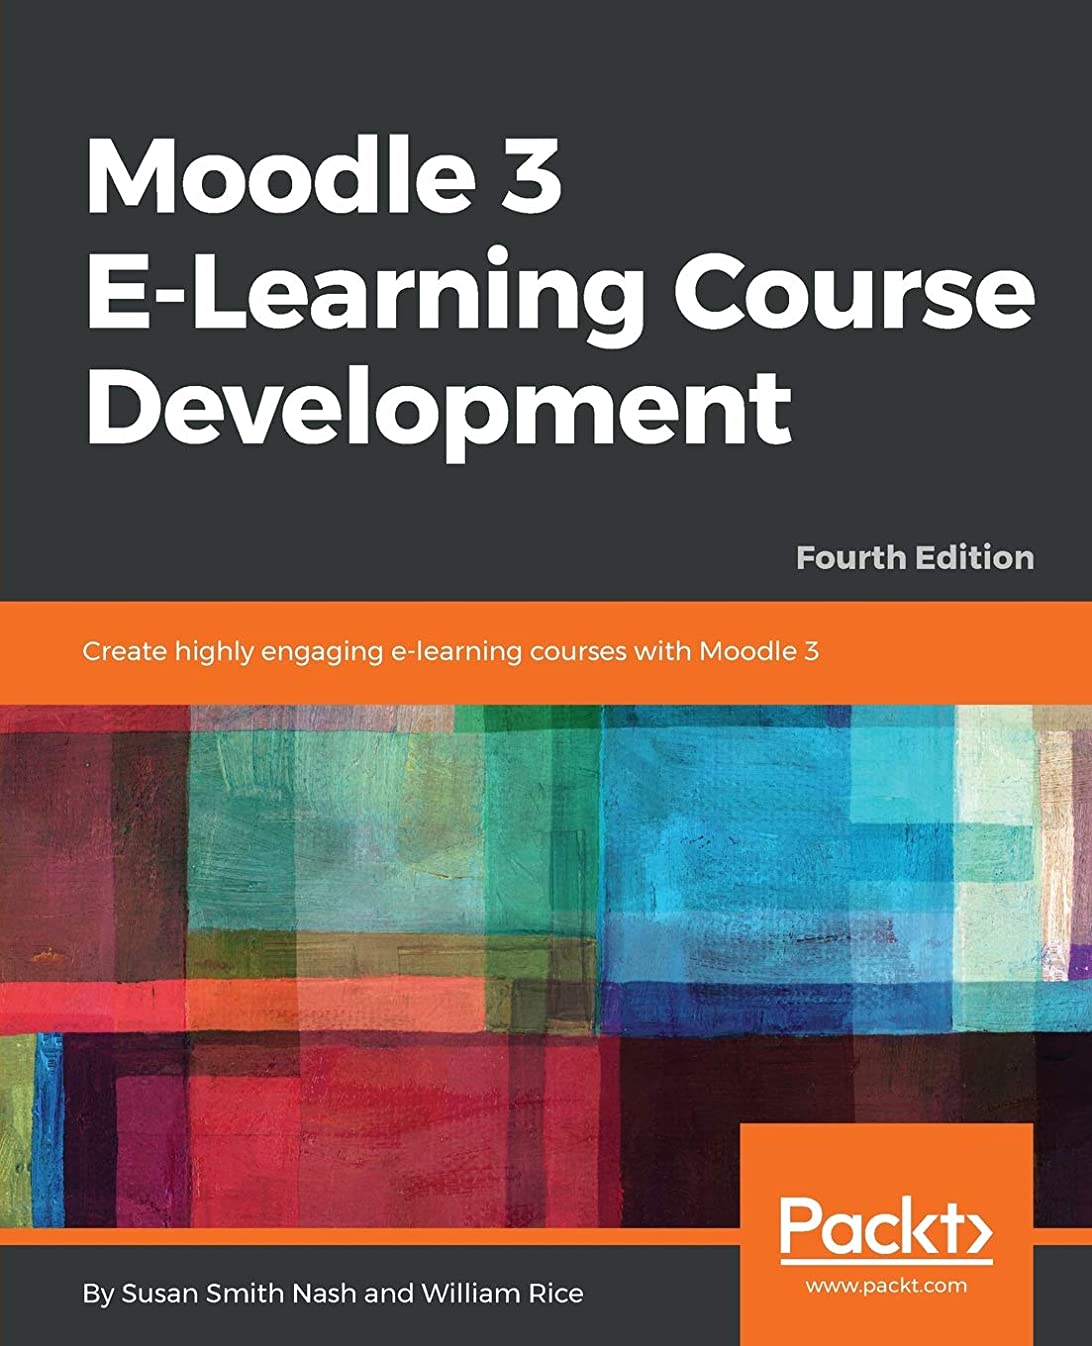 浸透する支援する実施するMoodle 3 E-Learning Course Development: Create highly engaging e-learning courses with Moodle 3, 4th Edition